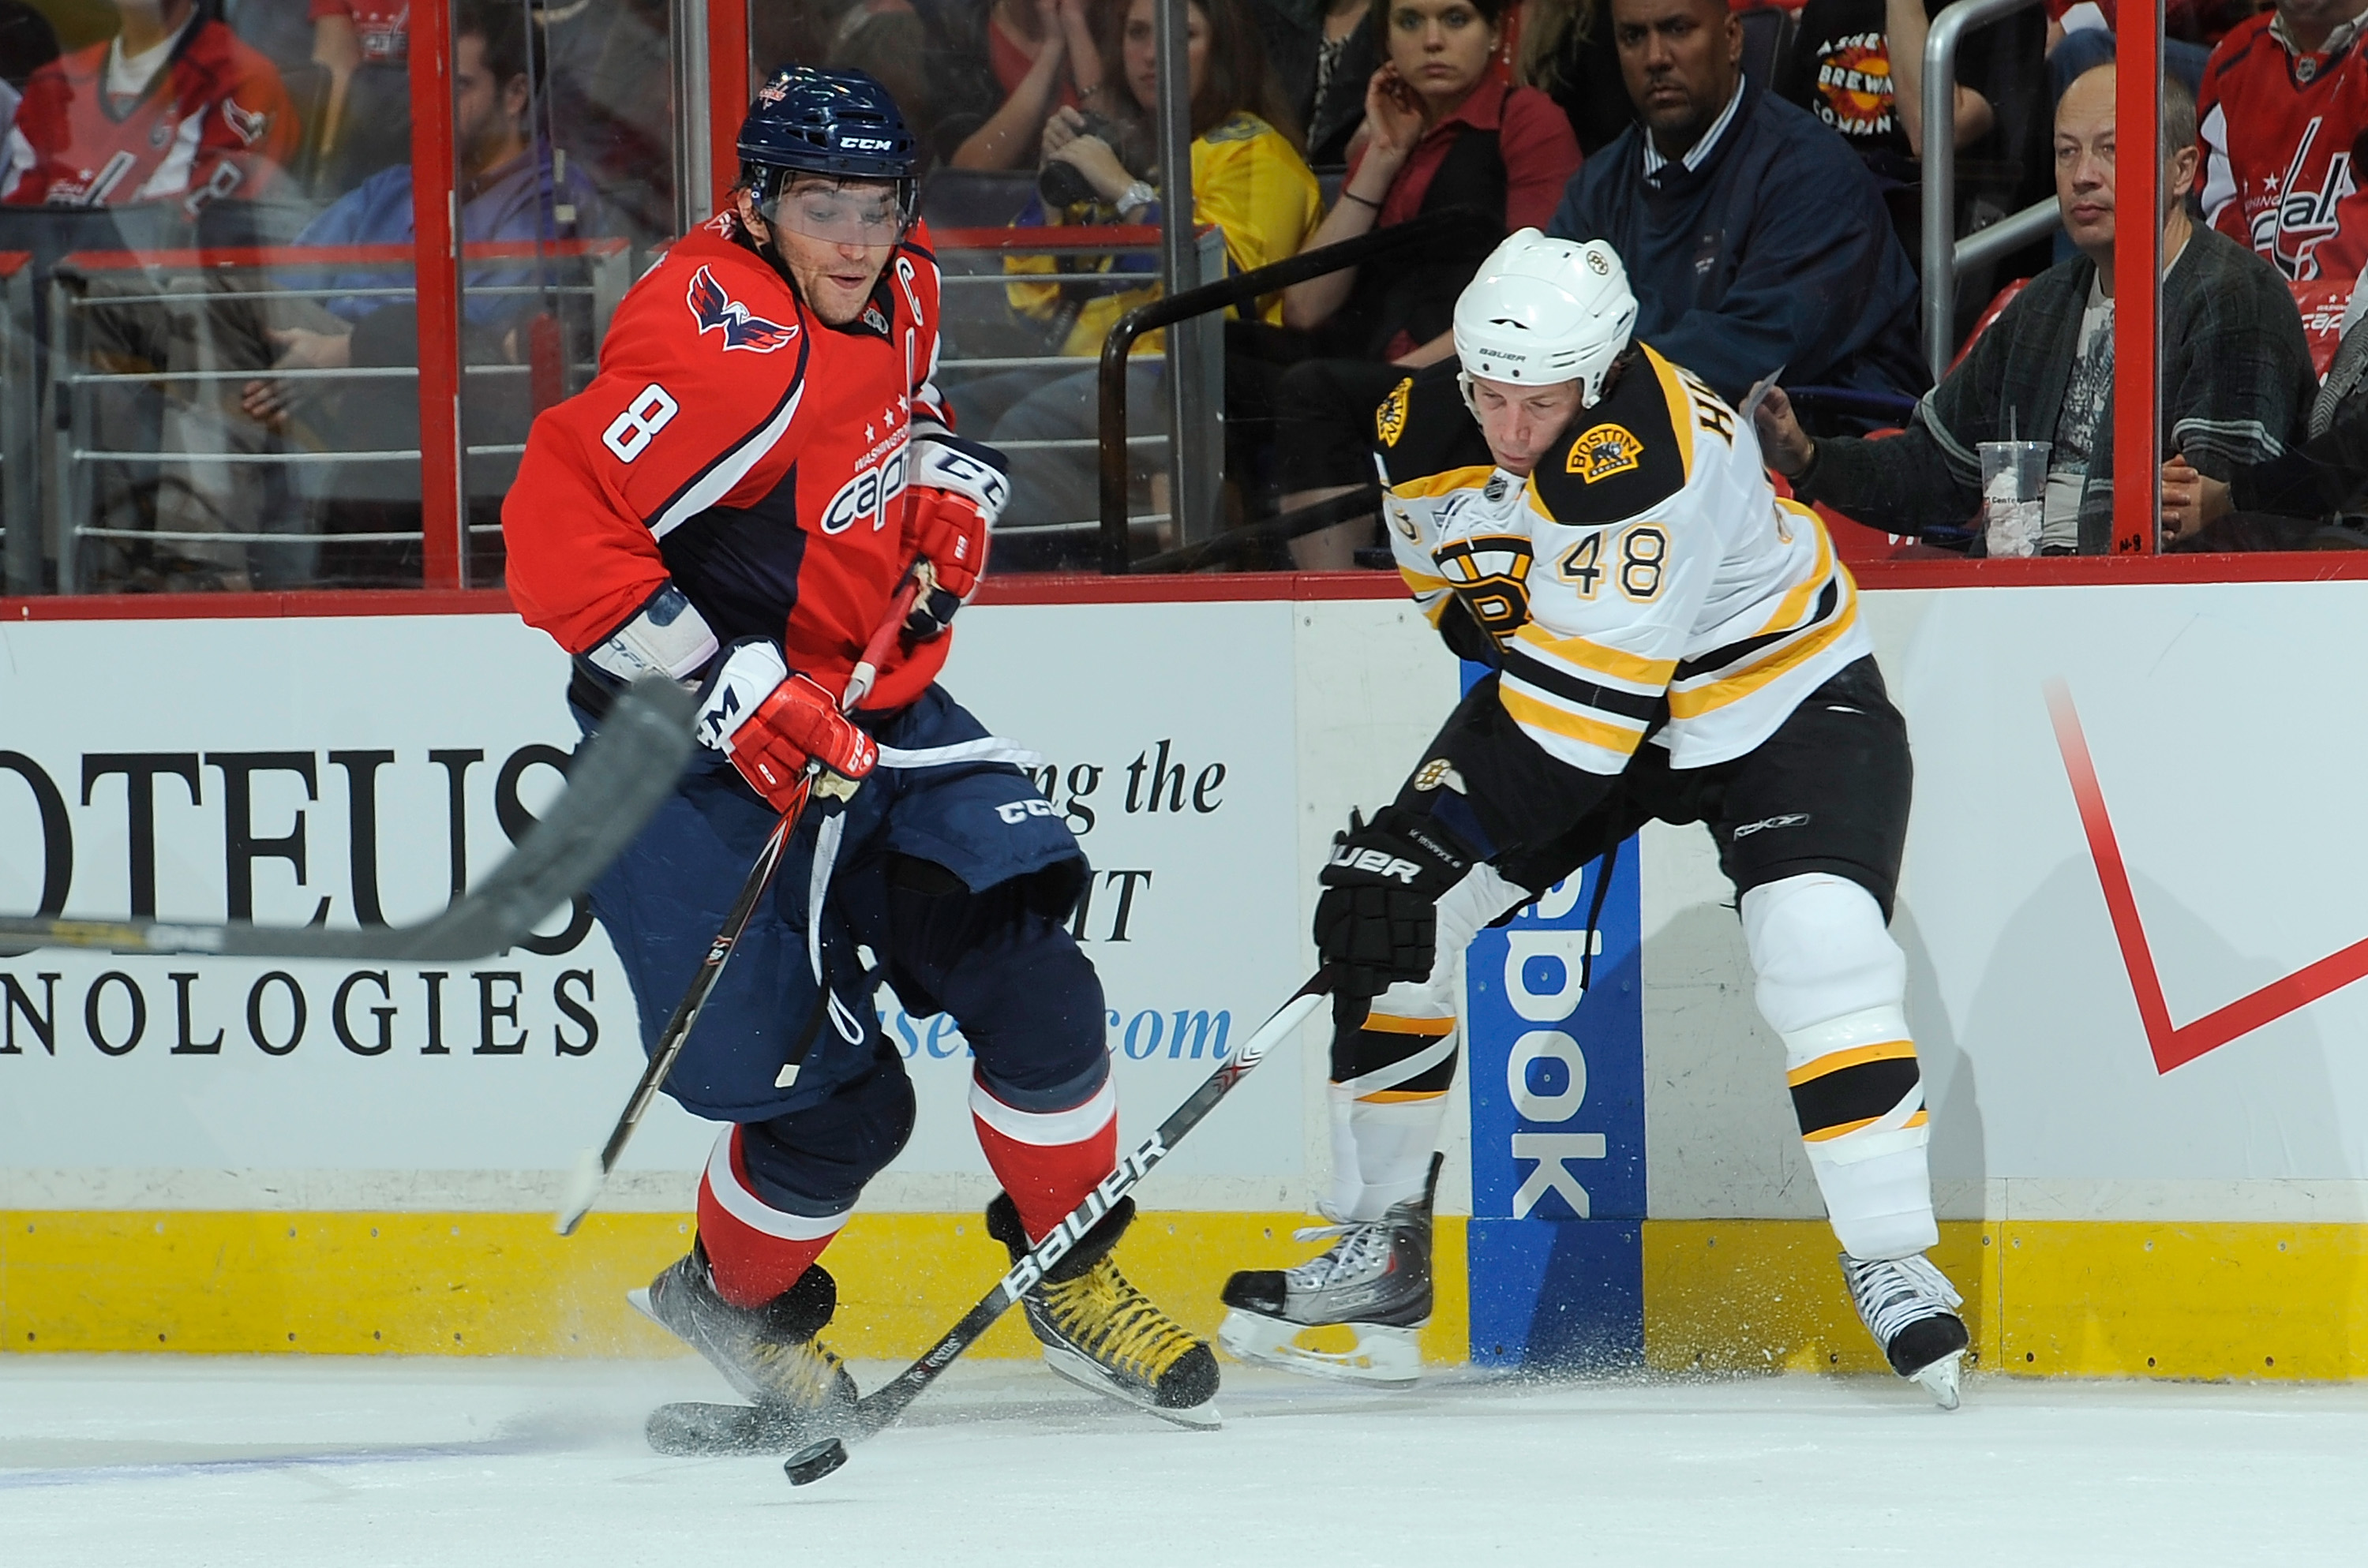 WASHINGTON - SEPTEMBER 28:  Alex Ovechkin #8 of the Washington Capitals battles for the puck with Matt Hunwick #48 of the Boston Bruins at Verizon Center on September 28, 2010 in Washington, DC.  (Photo by Greg Fiume/Getty Images)